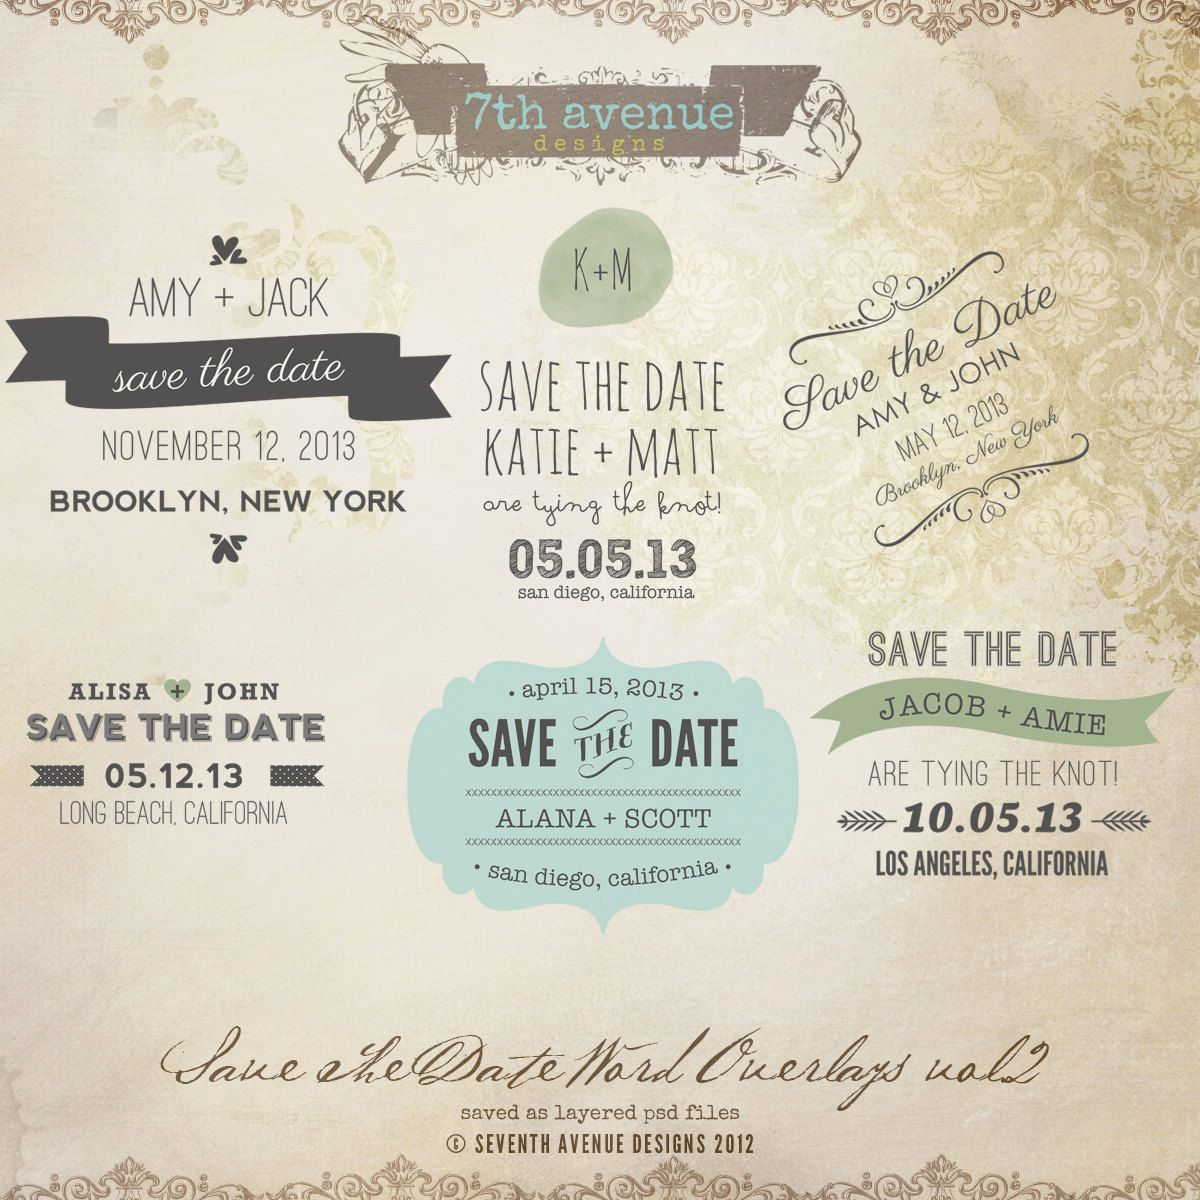 Instant Download Save The Date Words Overlays Vol 2 Etsy Save The Date Wording Save The Date Templates Save The Date Save the date word template